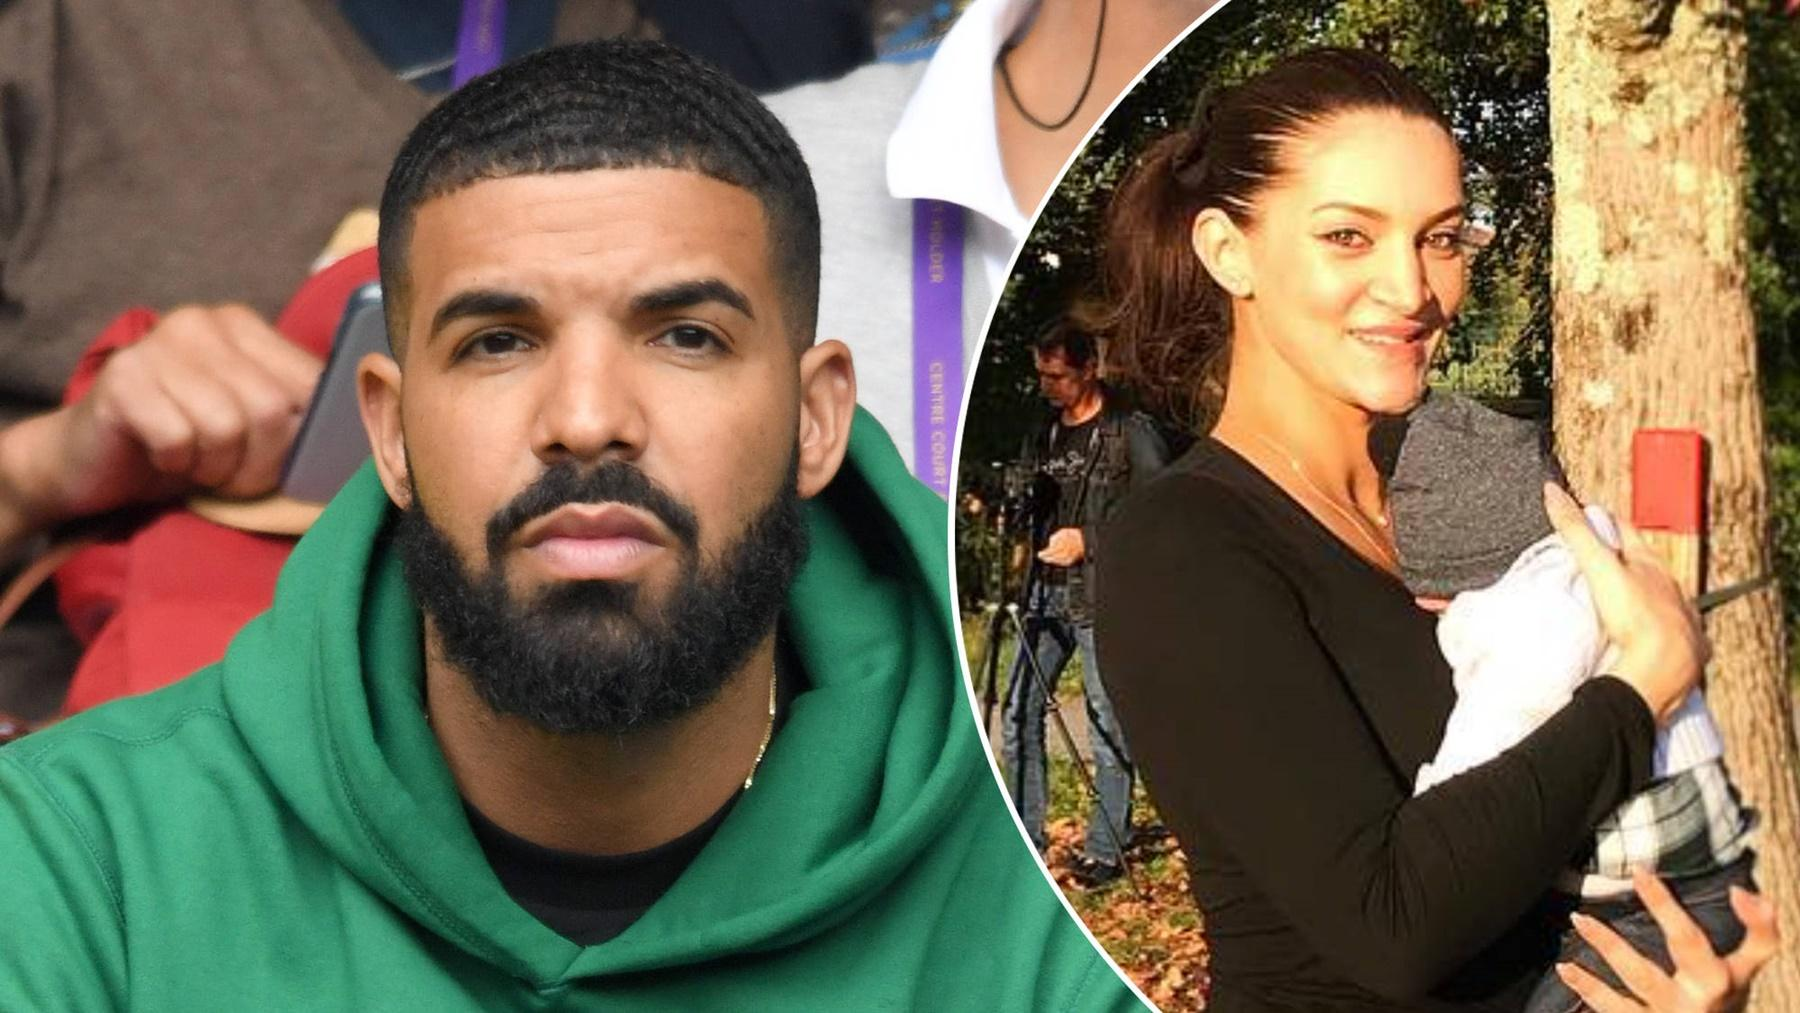 Drake Debuts Massive Tattoo Of His Son Adonis After Reuniting With Sophie Brussaux